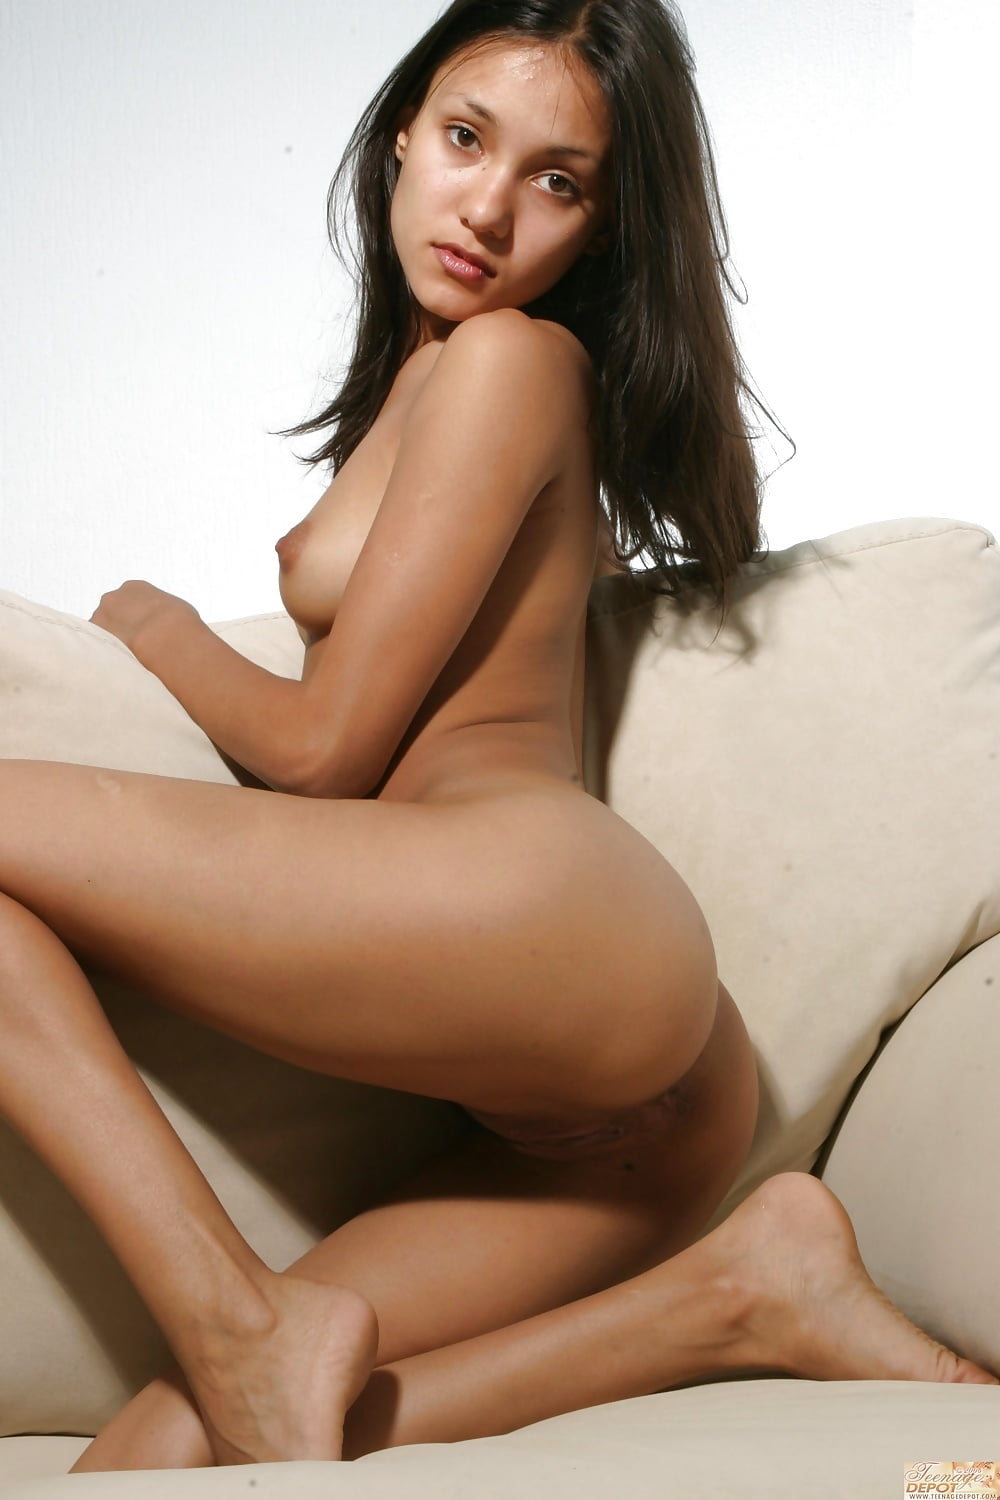 girls-sex-nude-kristin-kreuk-bent-over-orders-sex